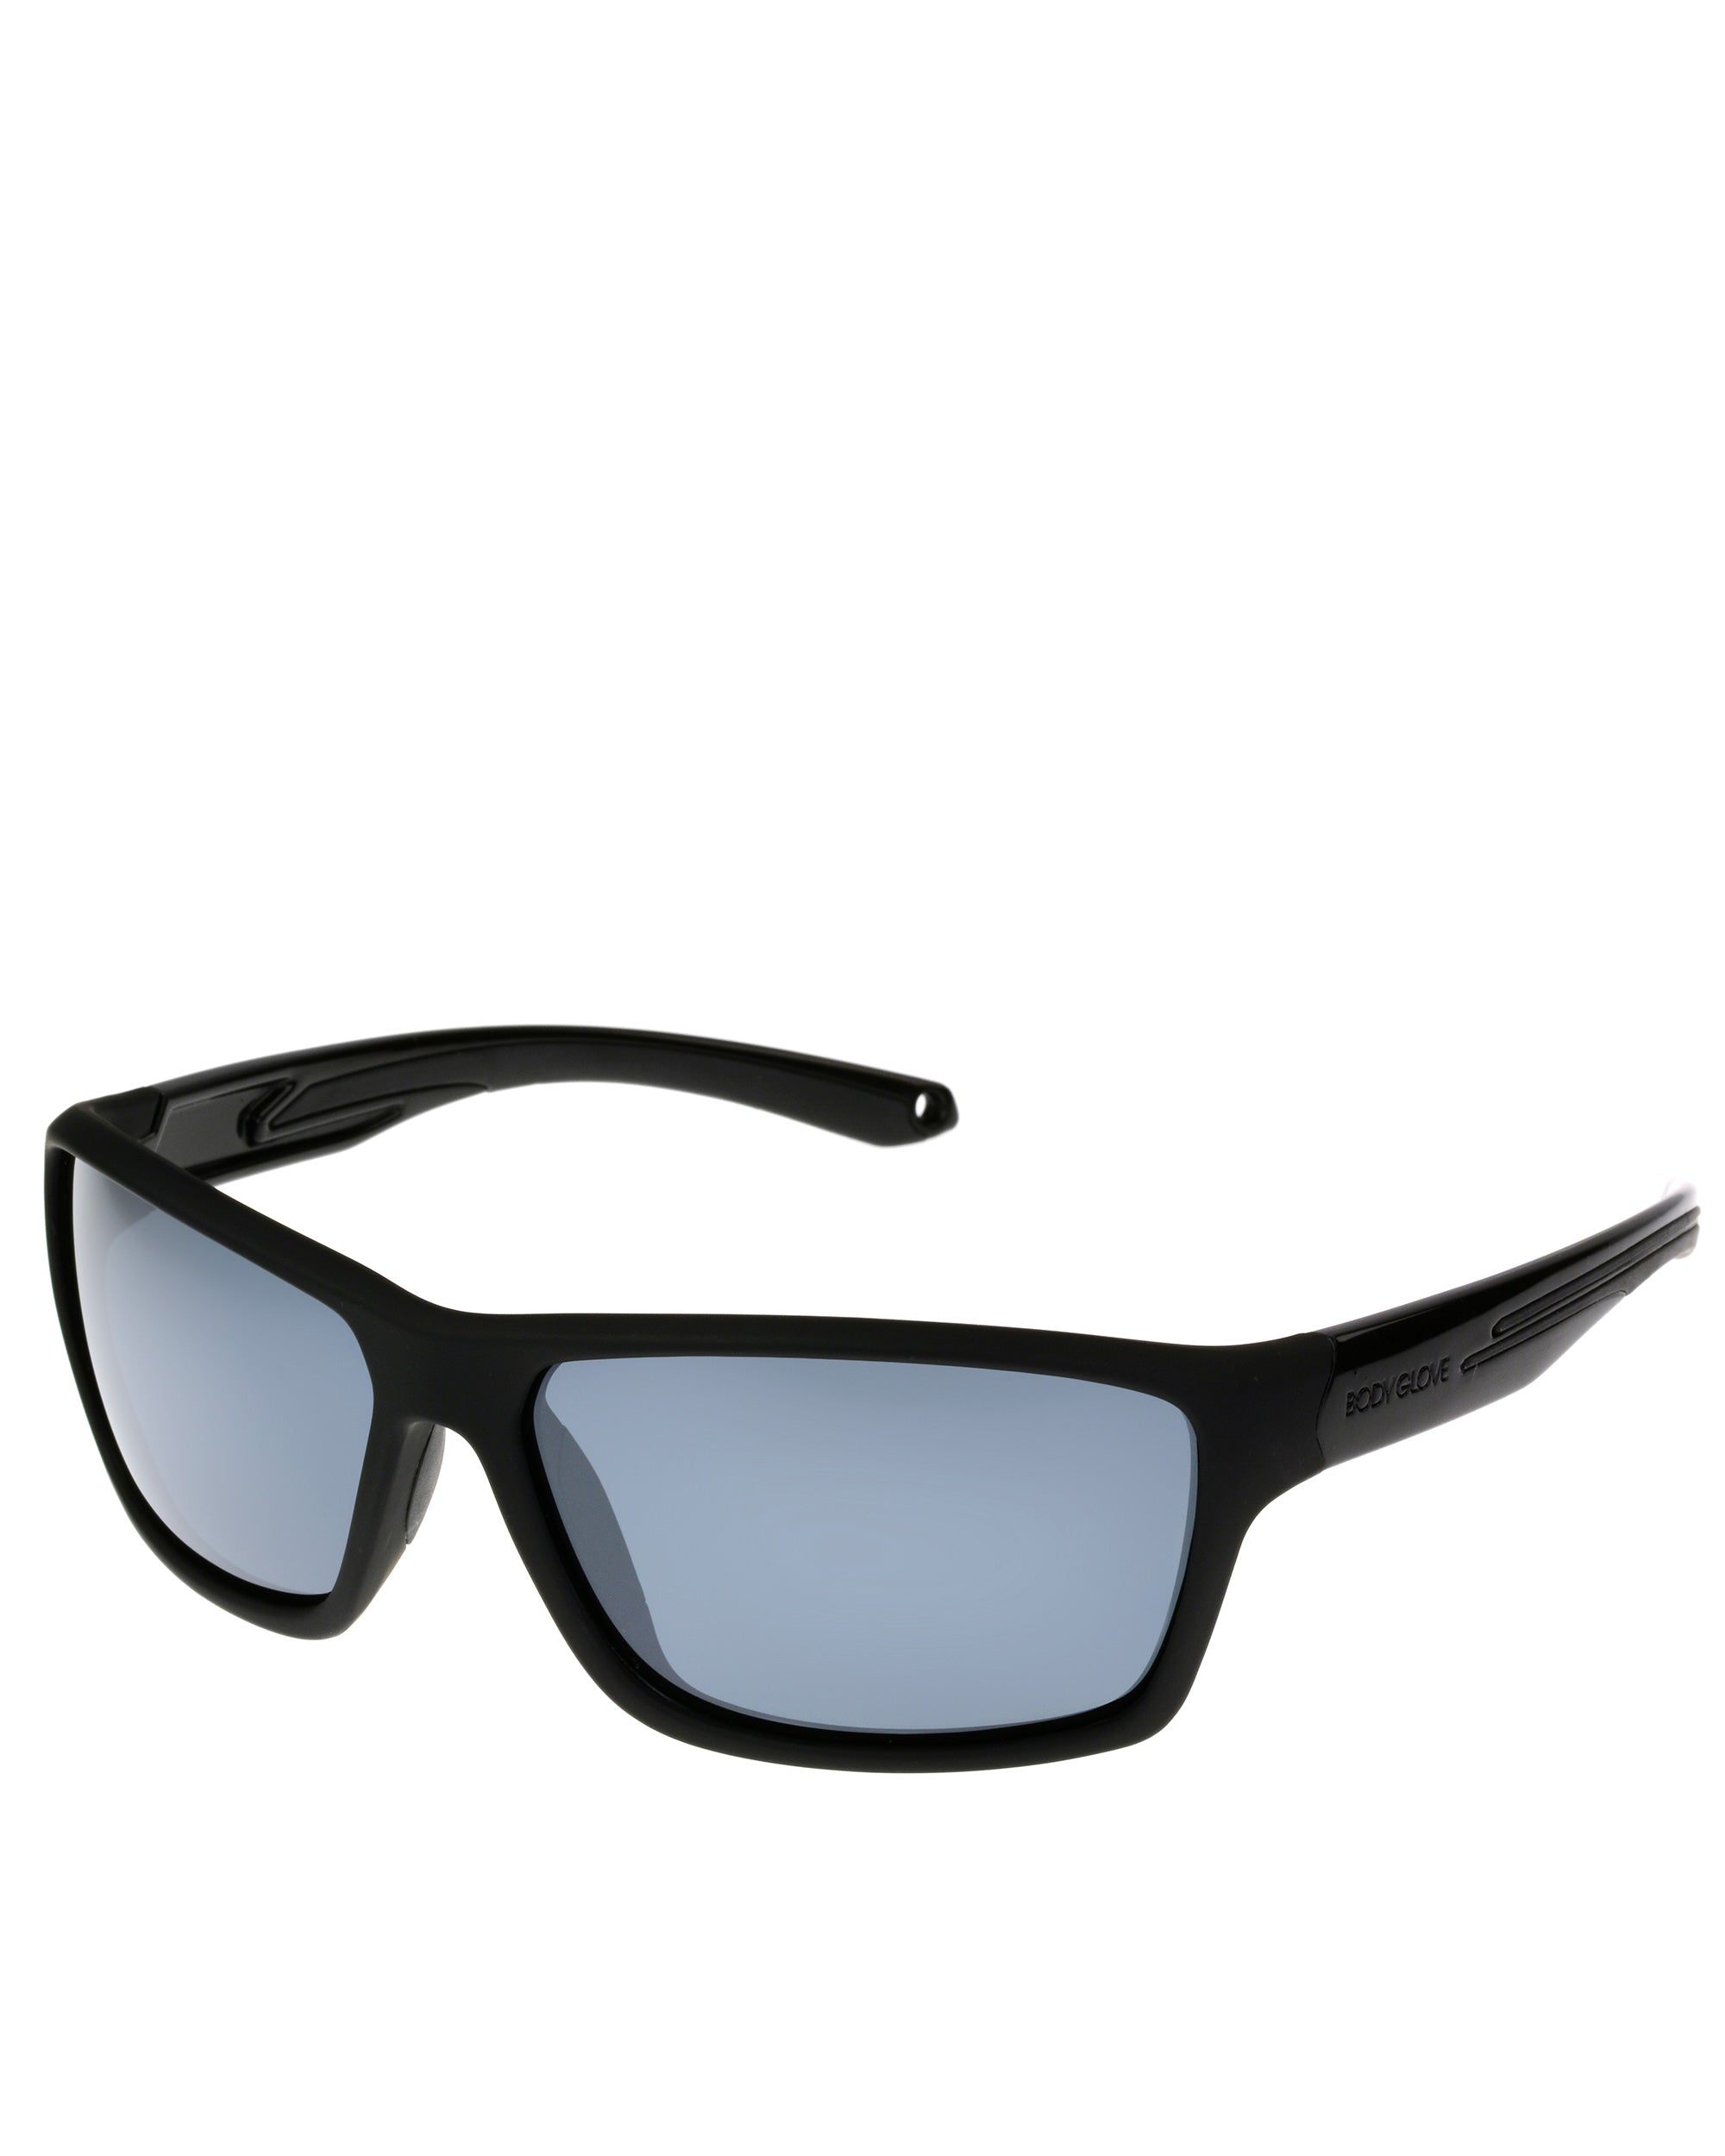 Men's FL26 Floating Polarized Sunglasses - Black